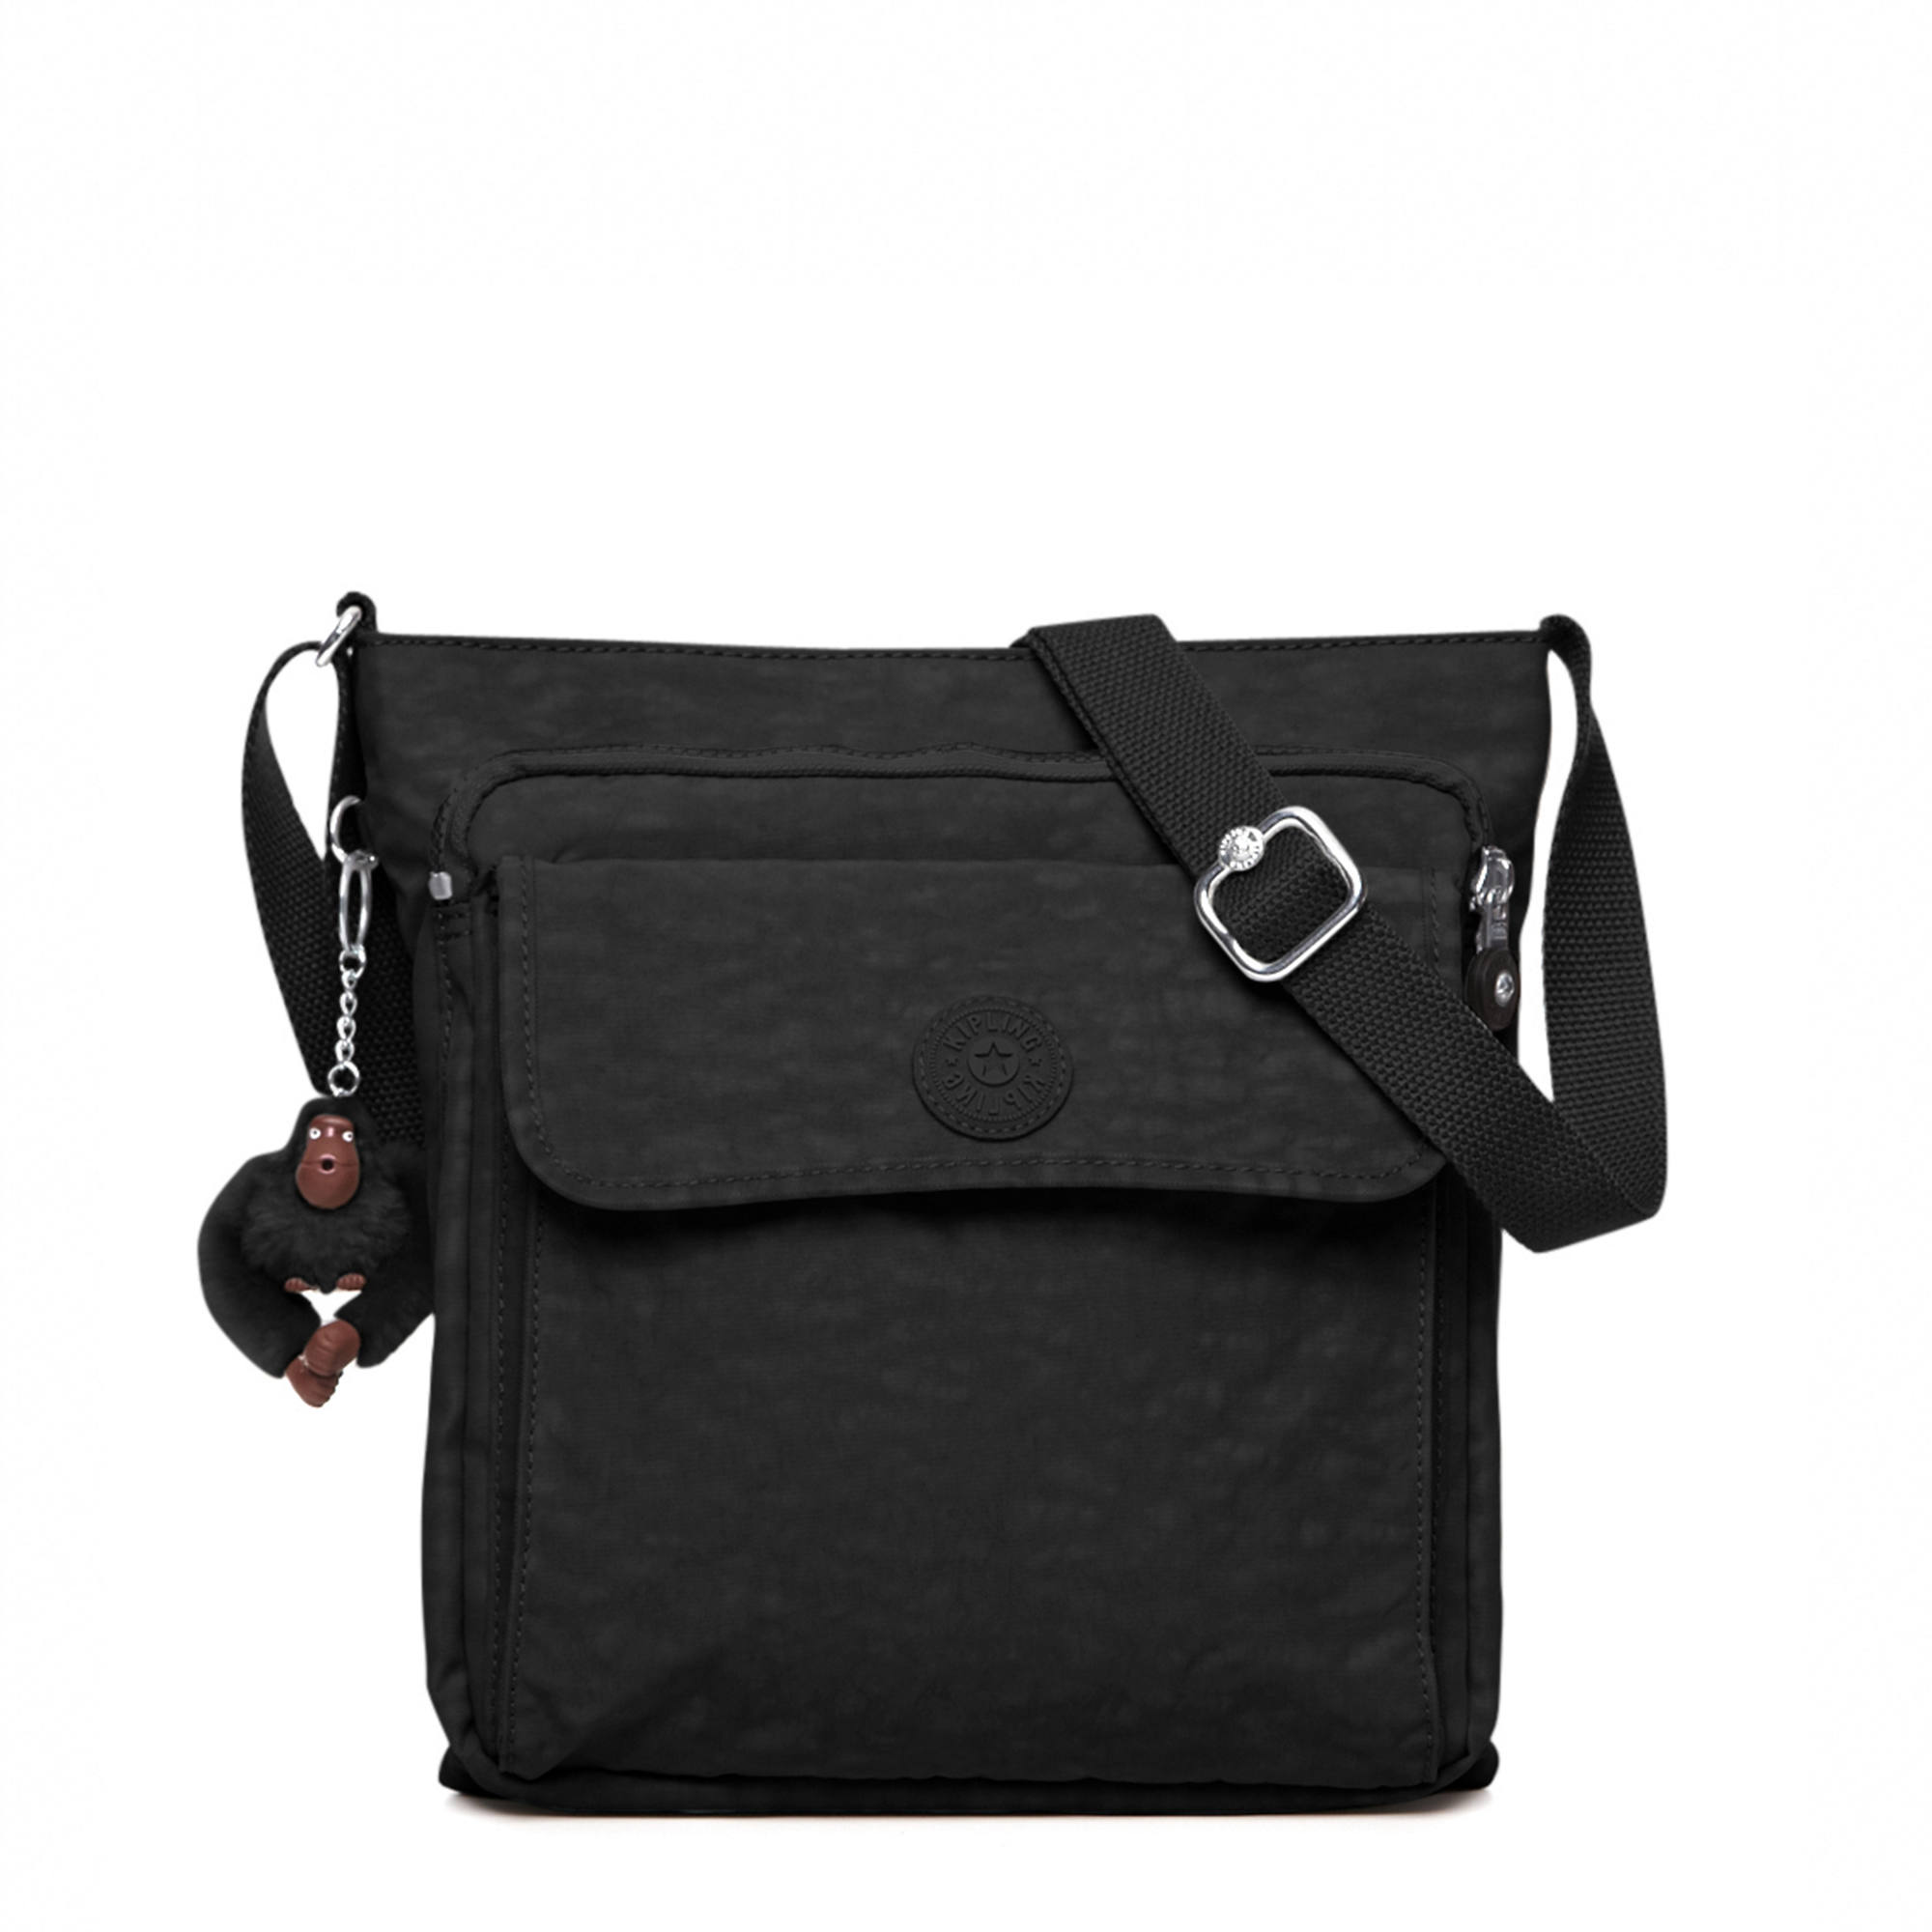 1a52918e0 Machida Crossbody Bag,True Black,large